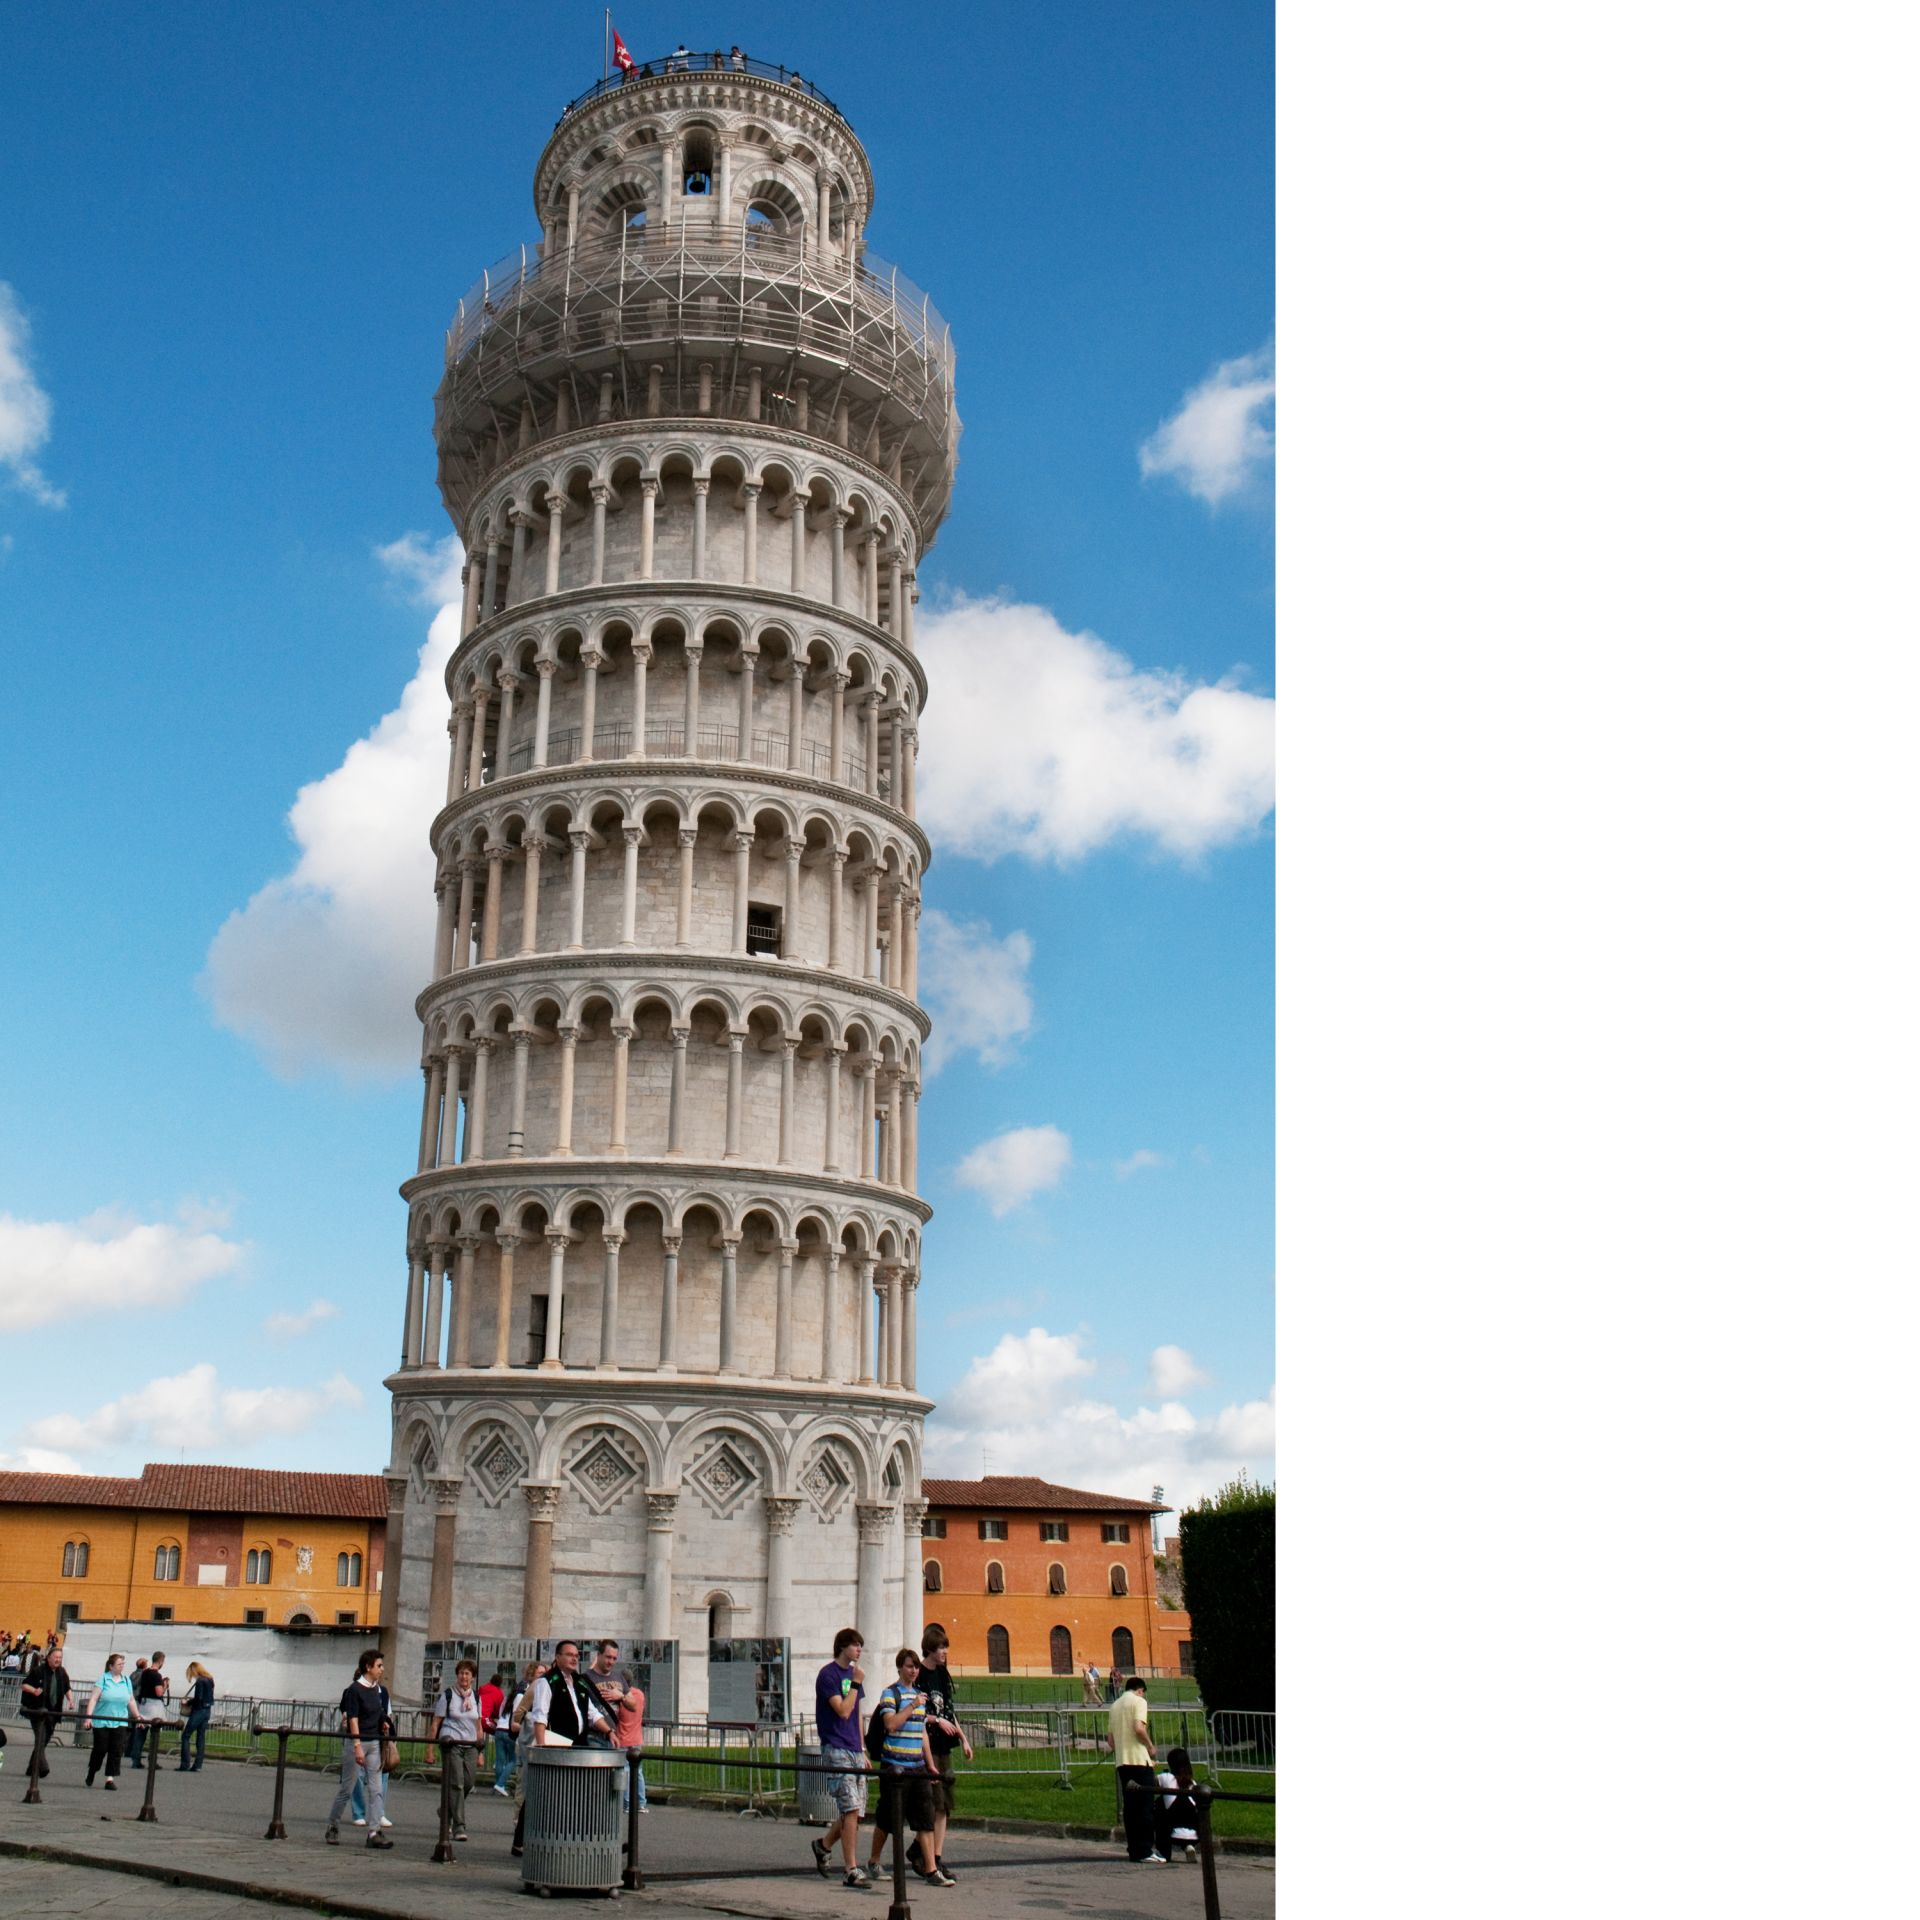 Where is the Tower of Pisa